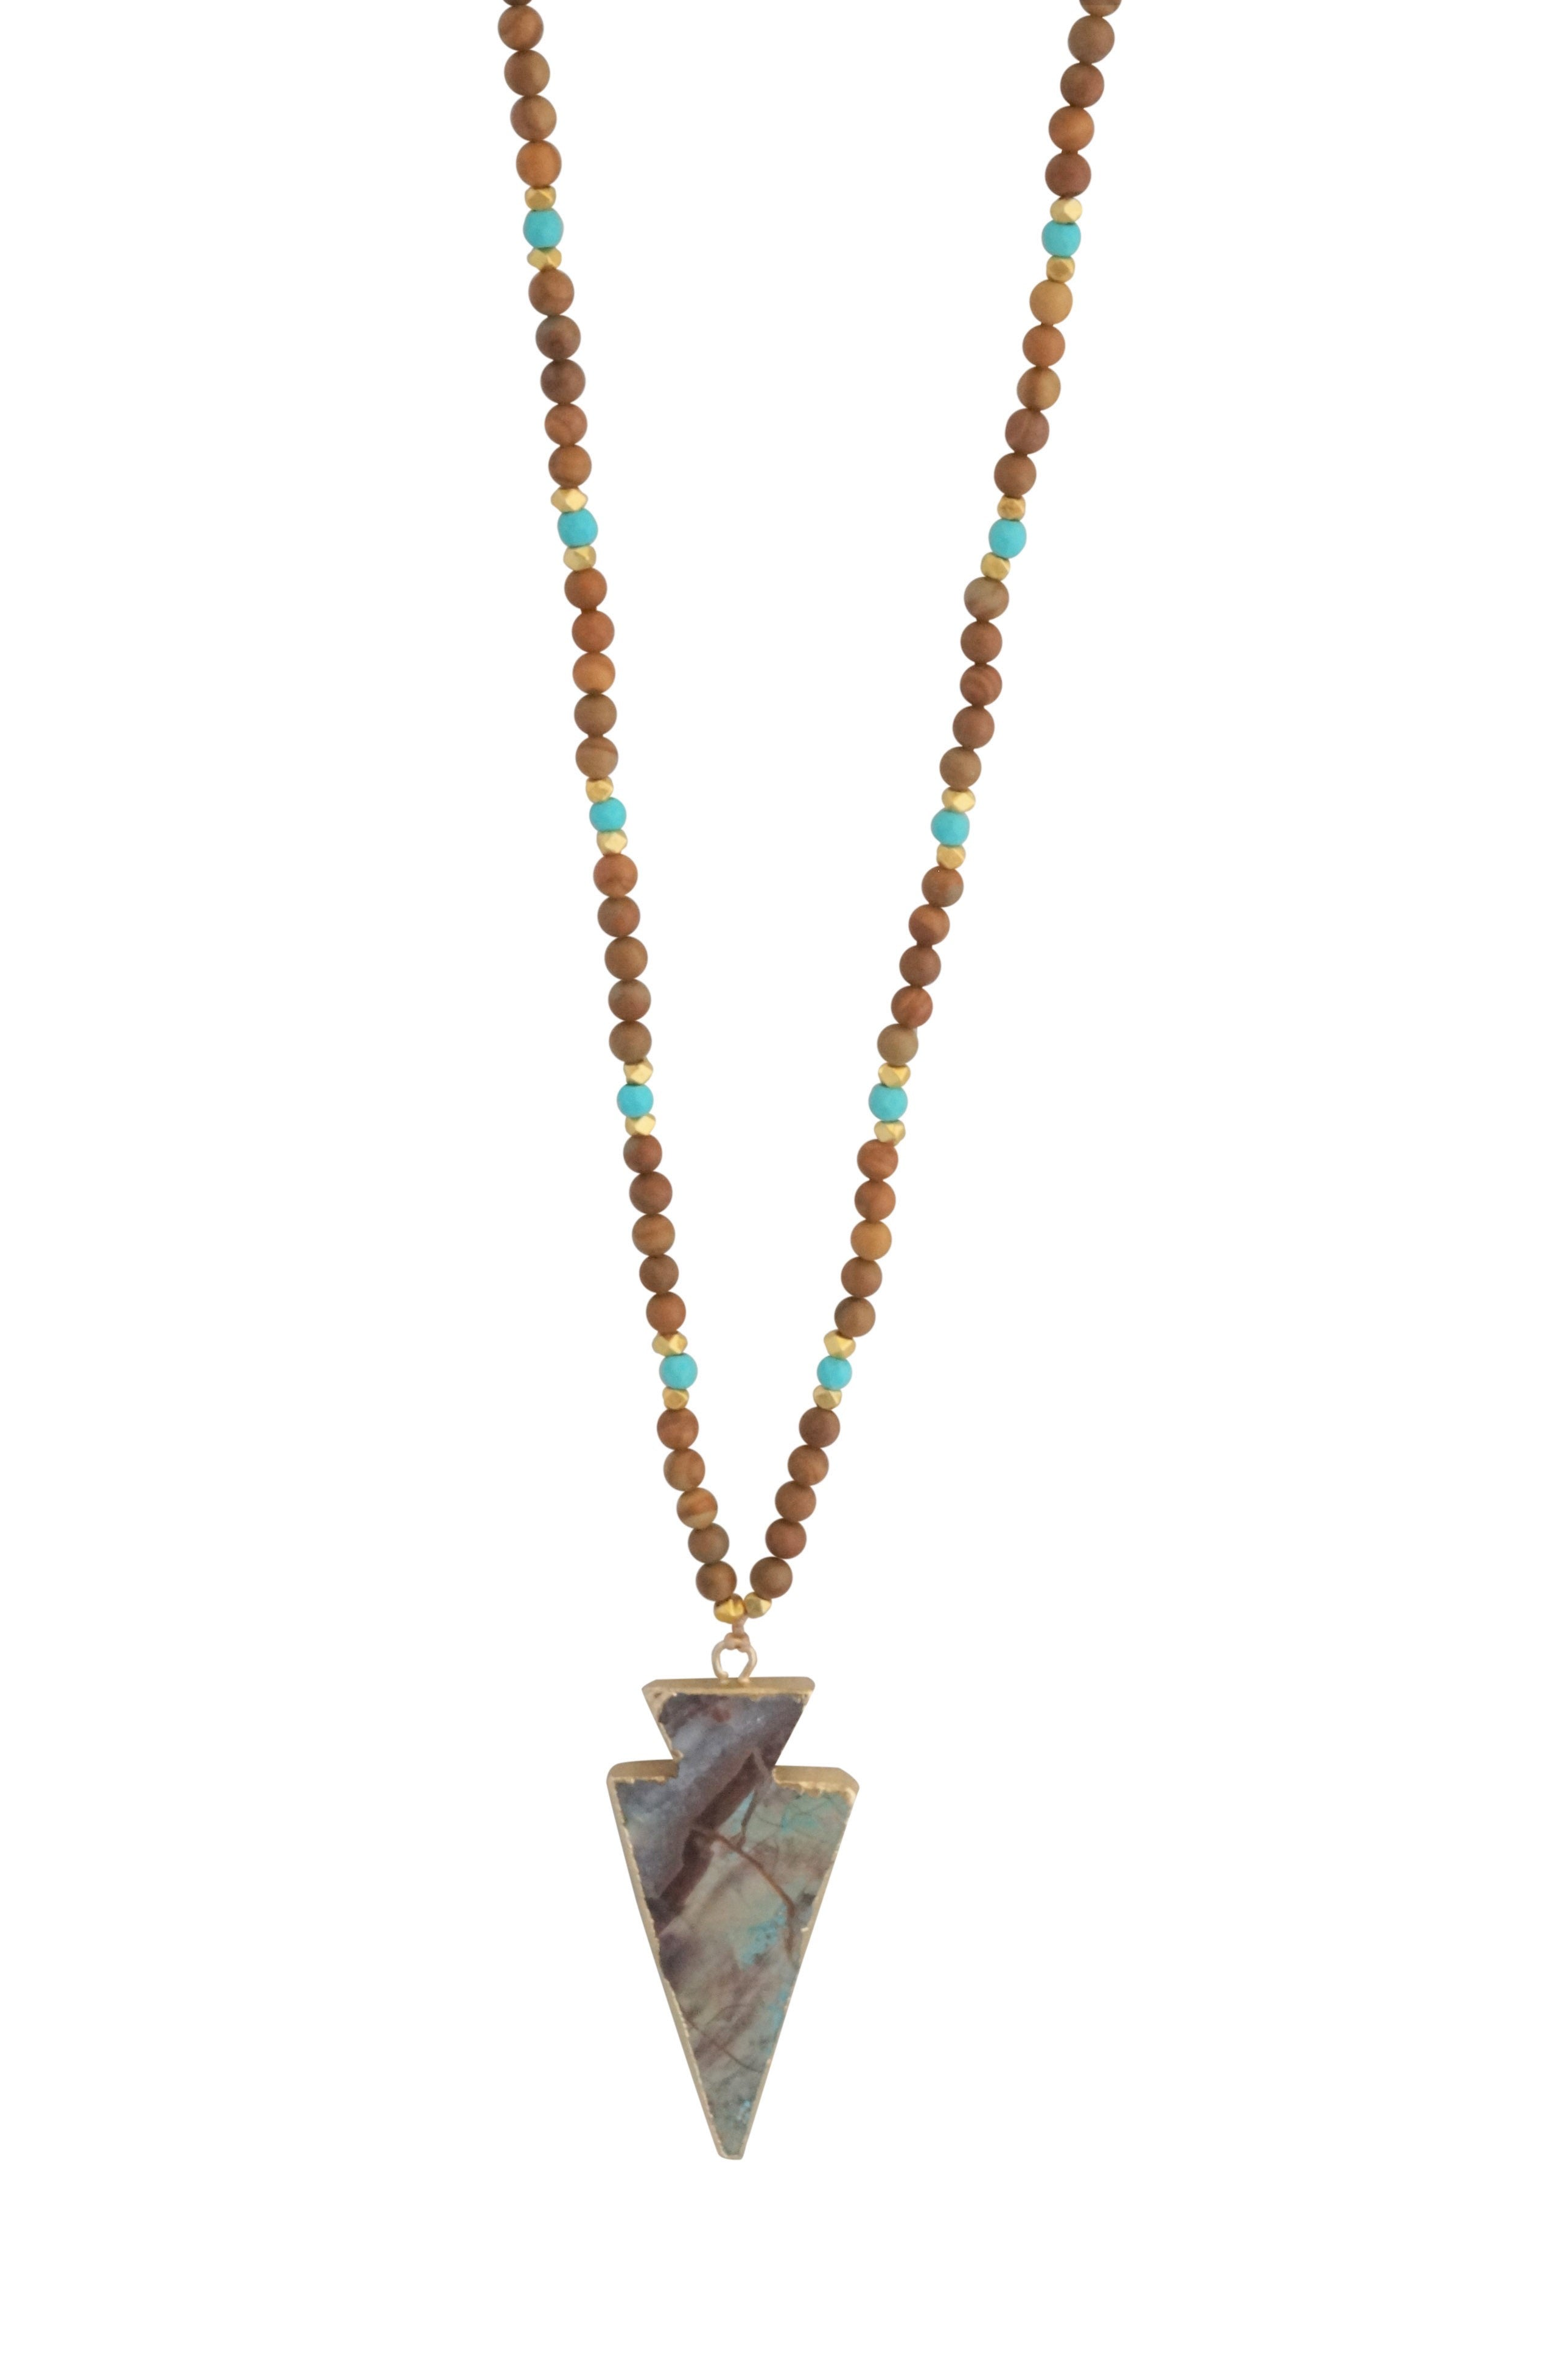 Patience Necklace - Carolyn Hearn Designs